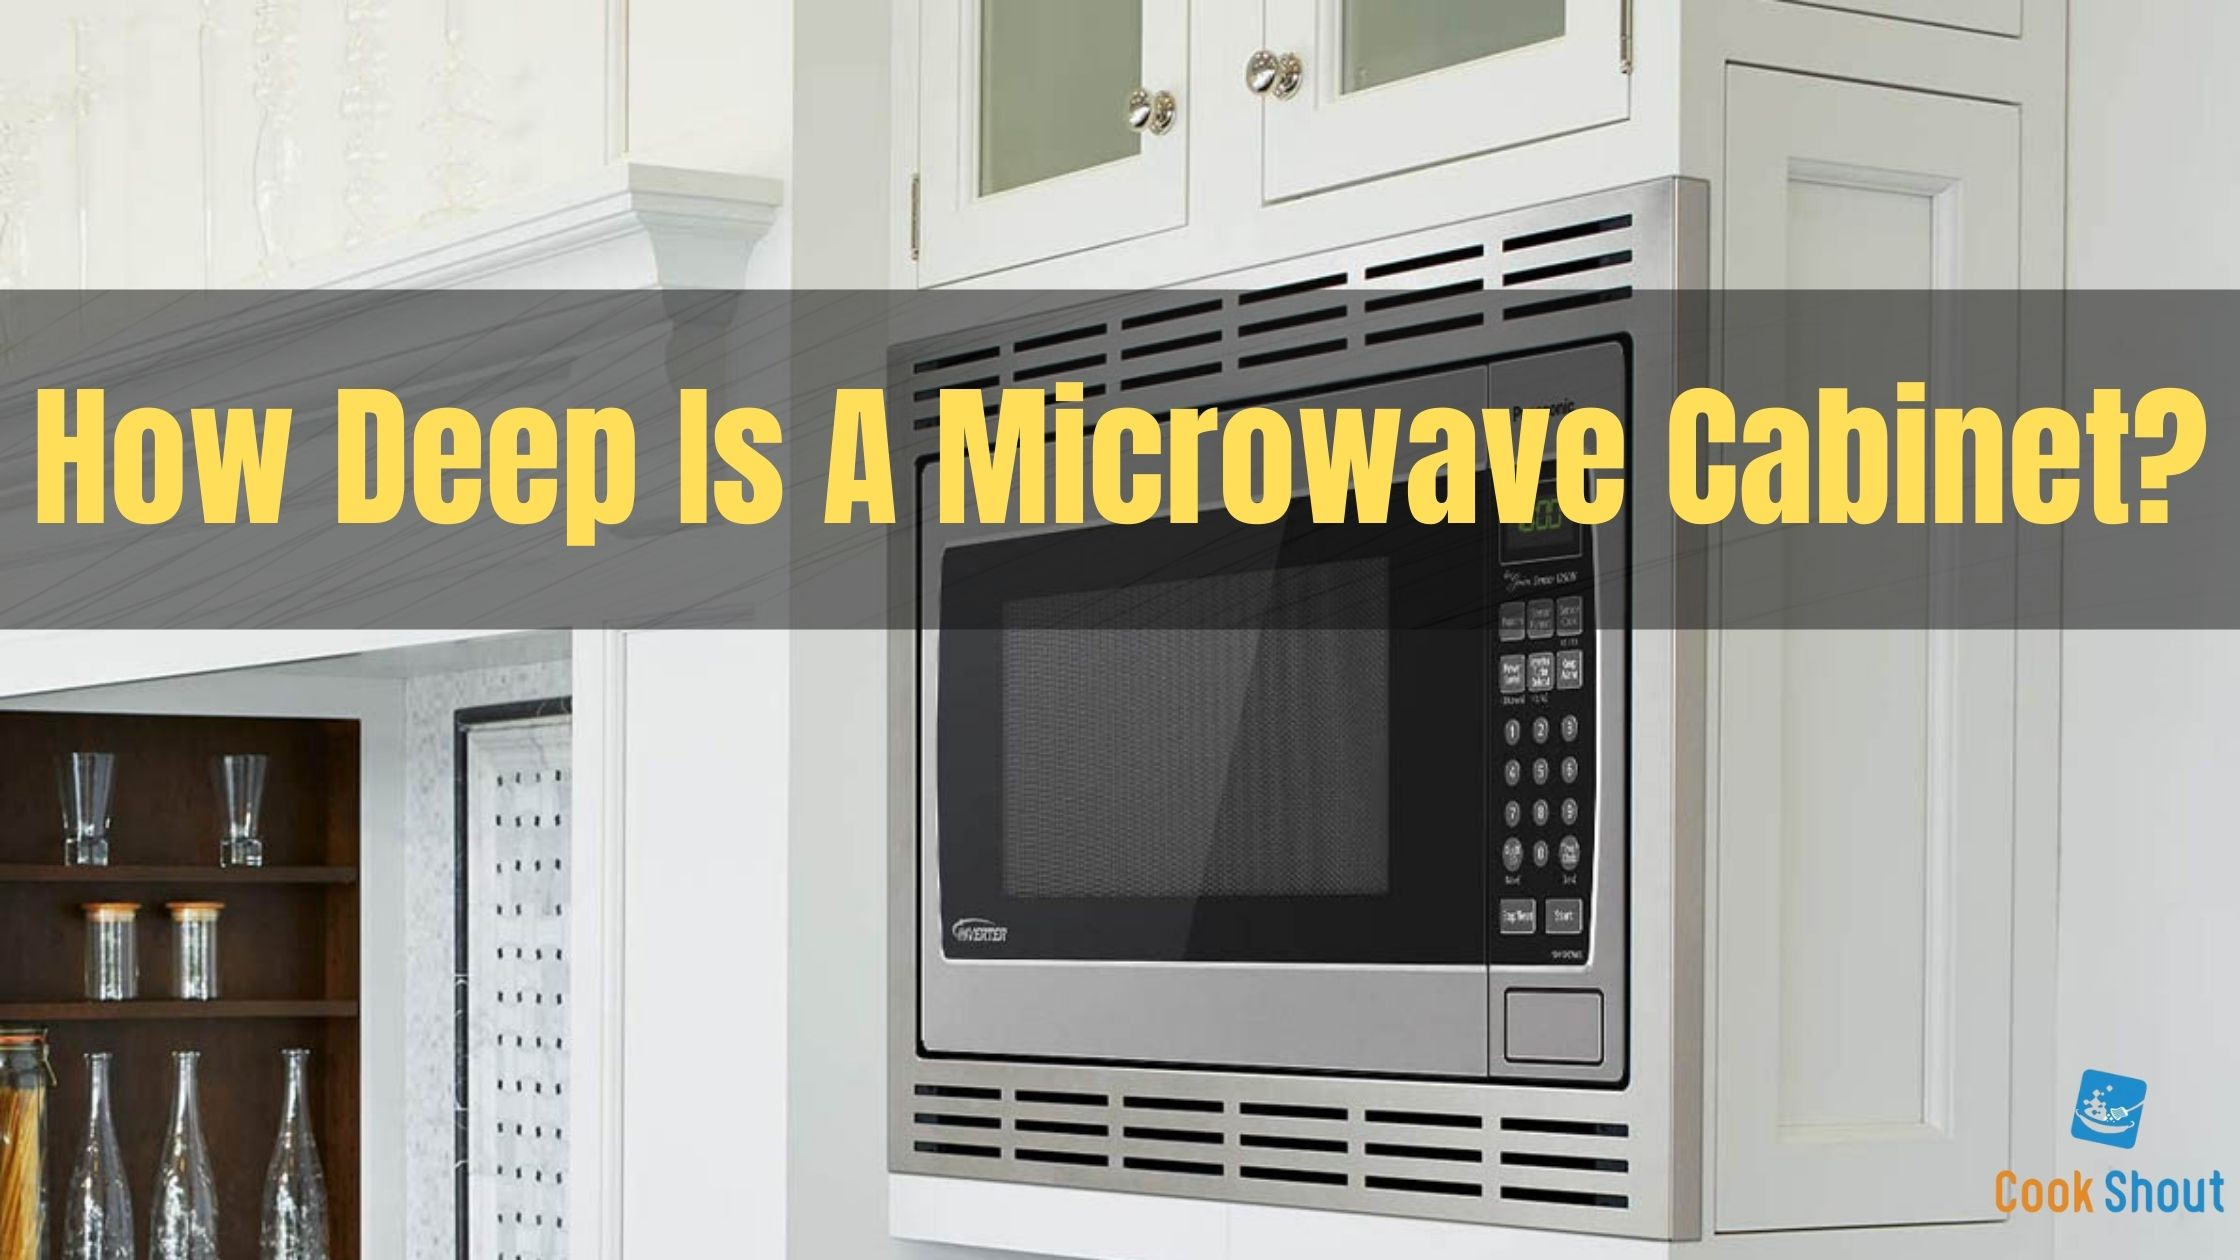 How Deep Is A Microwave Cabinet?